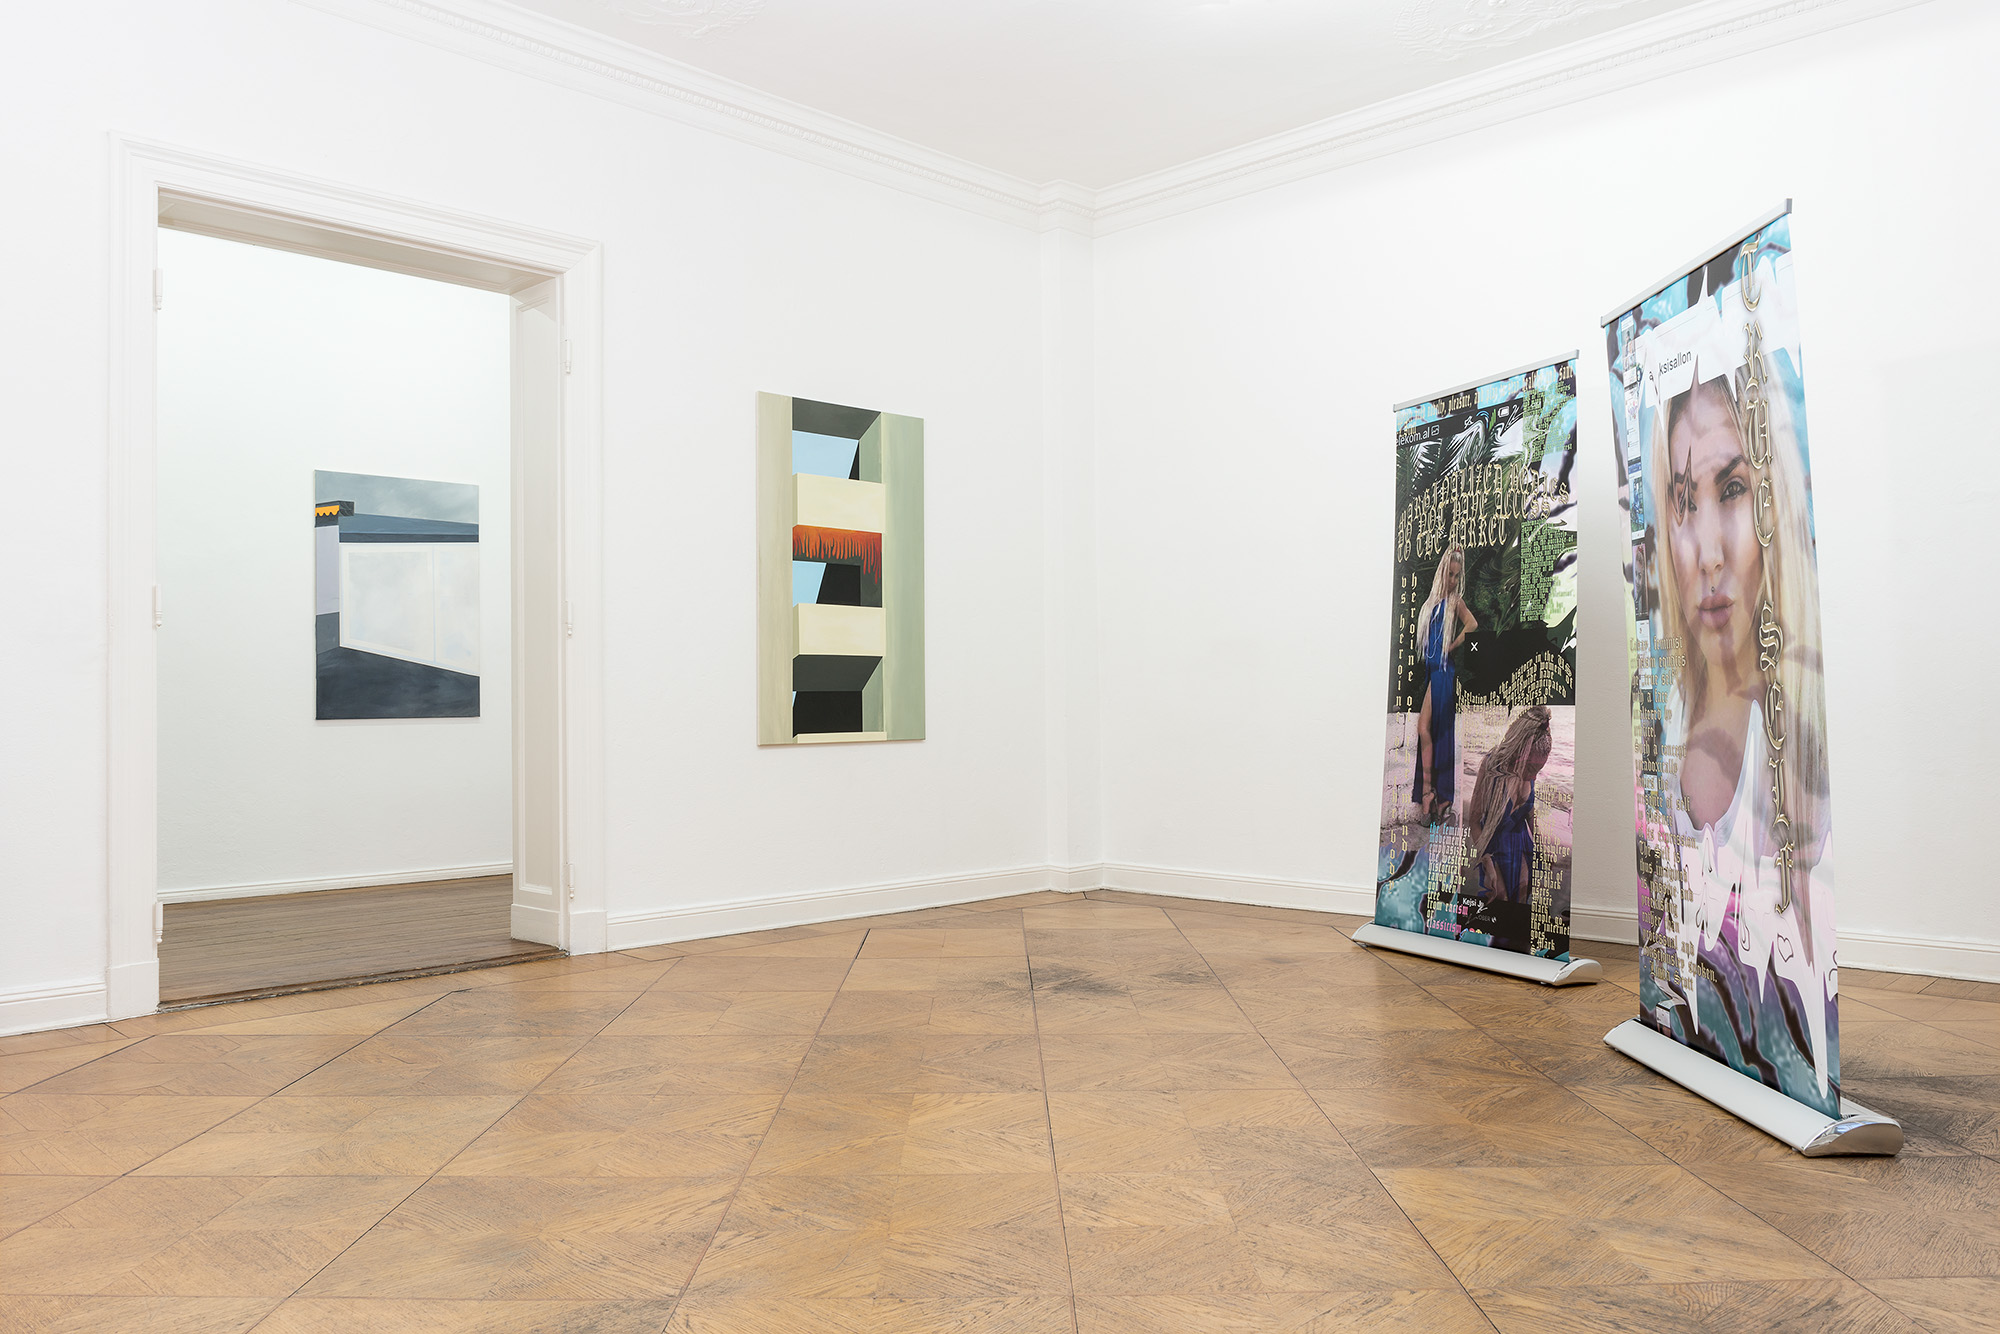 Exhibition view ADLER EHRENSTEIN LEY, Galerie Anton Janizewski, Photo: Sascha Herrmann